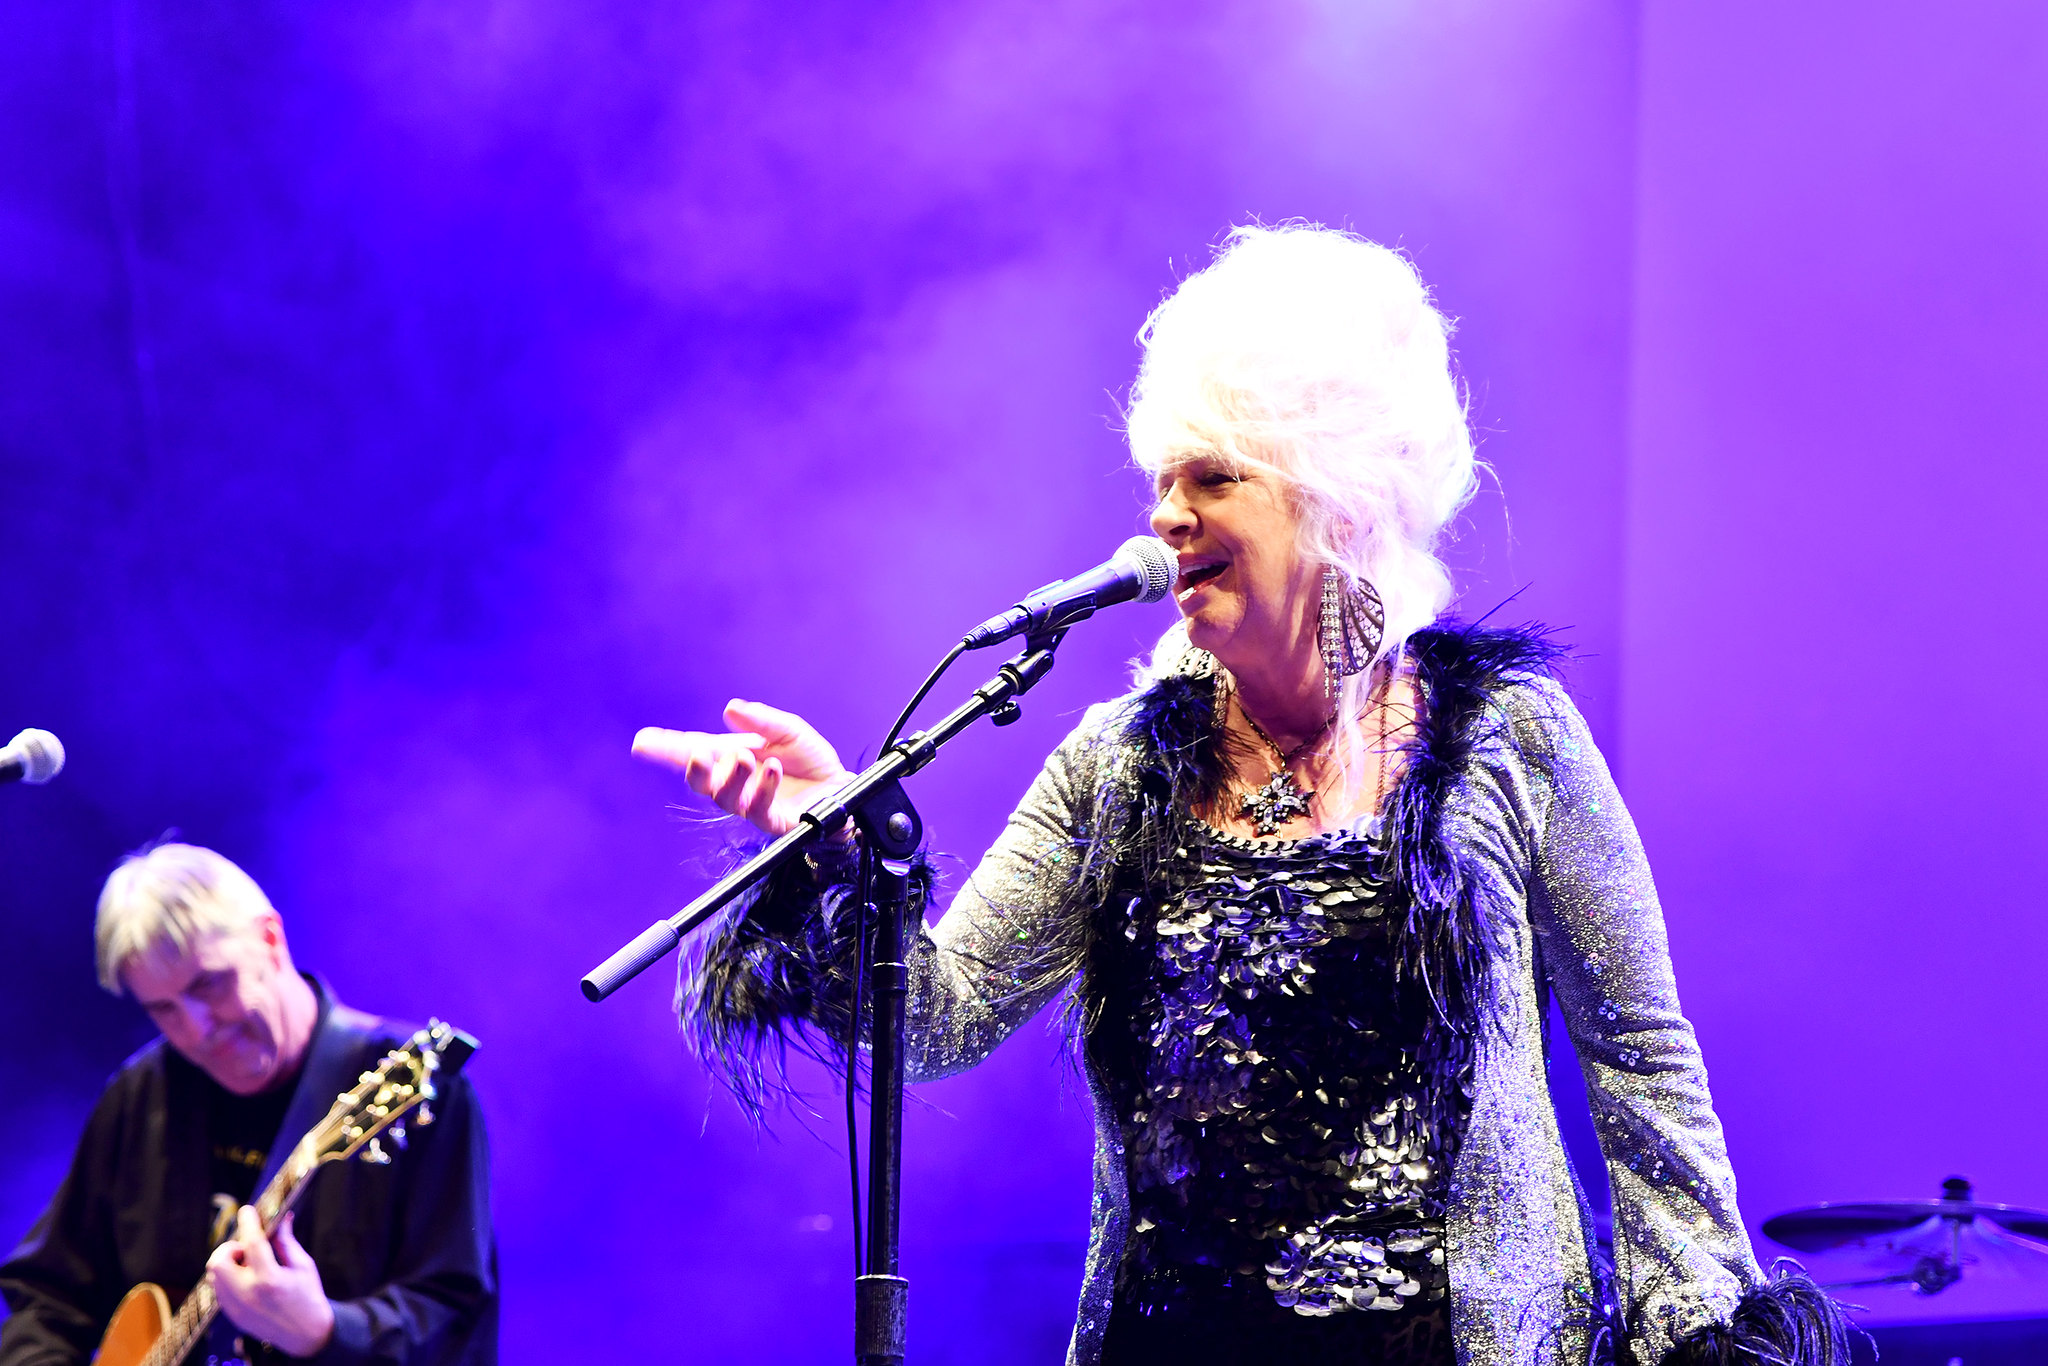 Christine Ohlman, the Beehive Queen, and member of the Saturday Night Live Band performs